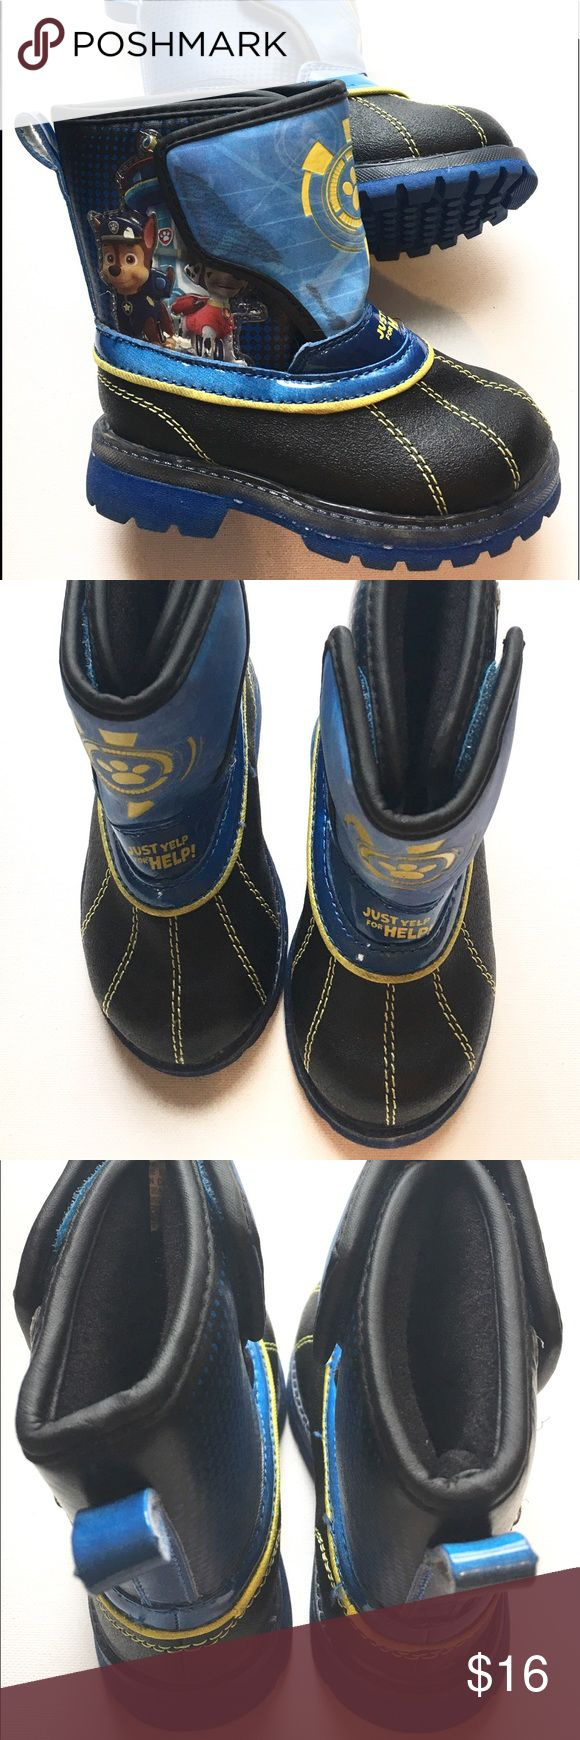 """Paw Patrol Light Up! Toddler Snow Boots New Paw Patrol toddler Boots. Light Up Boots. Size small 5/6. Paw Patrol """"Just Yelp for Help"""" Paw Patrol Shoes Boots"""